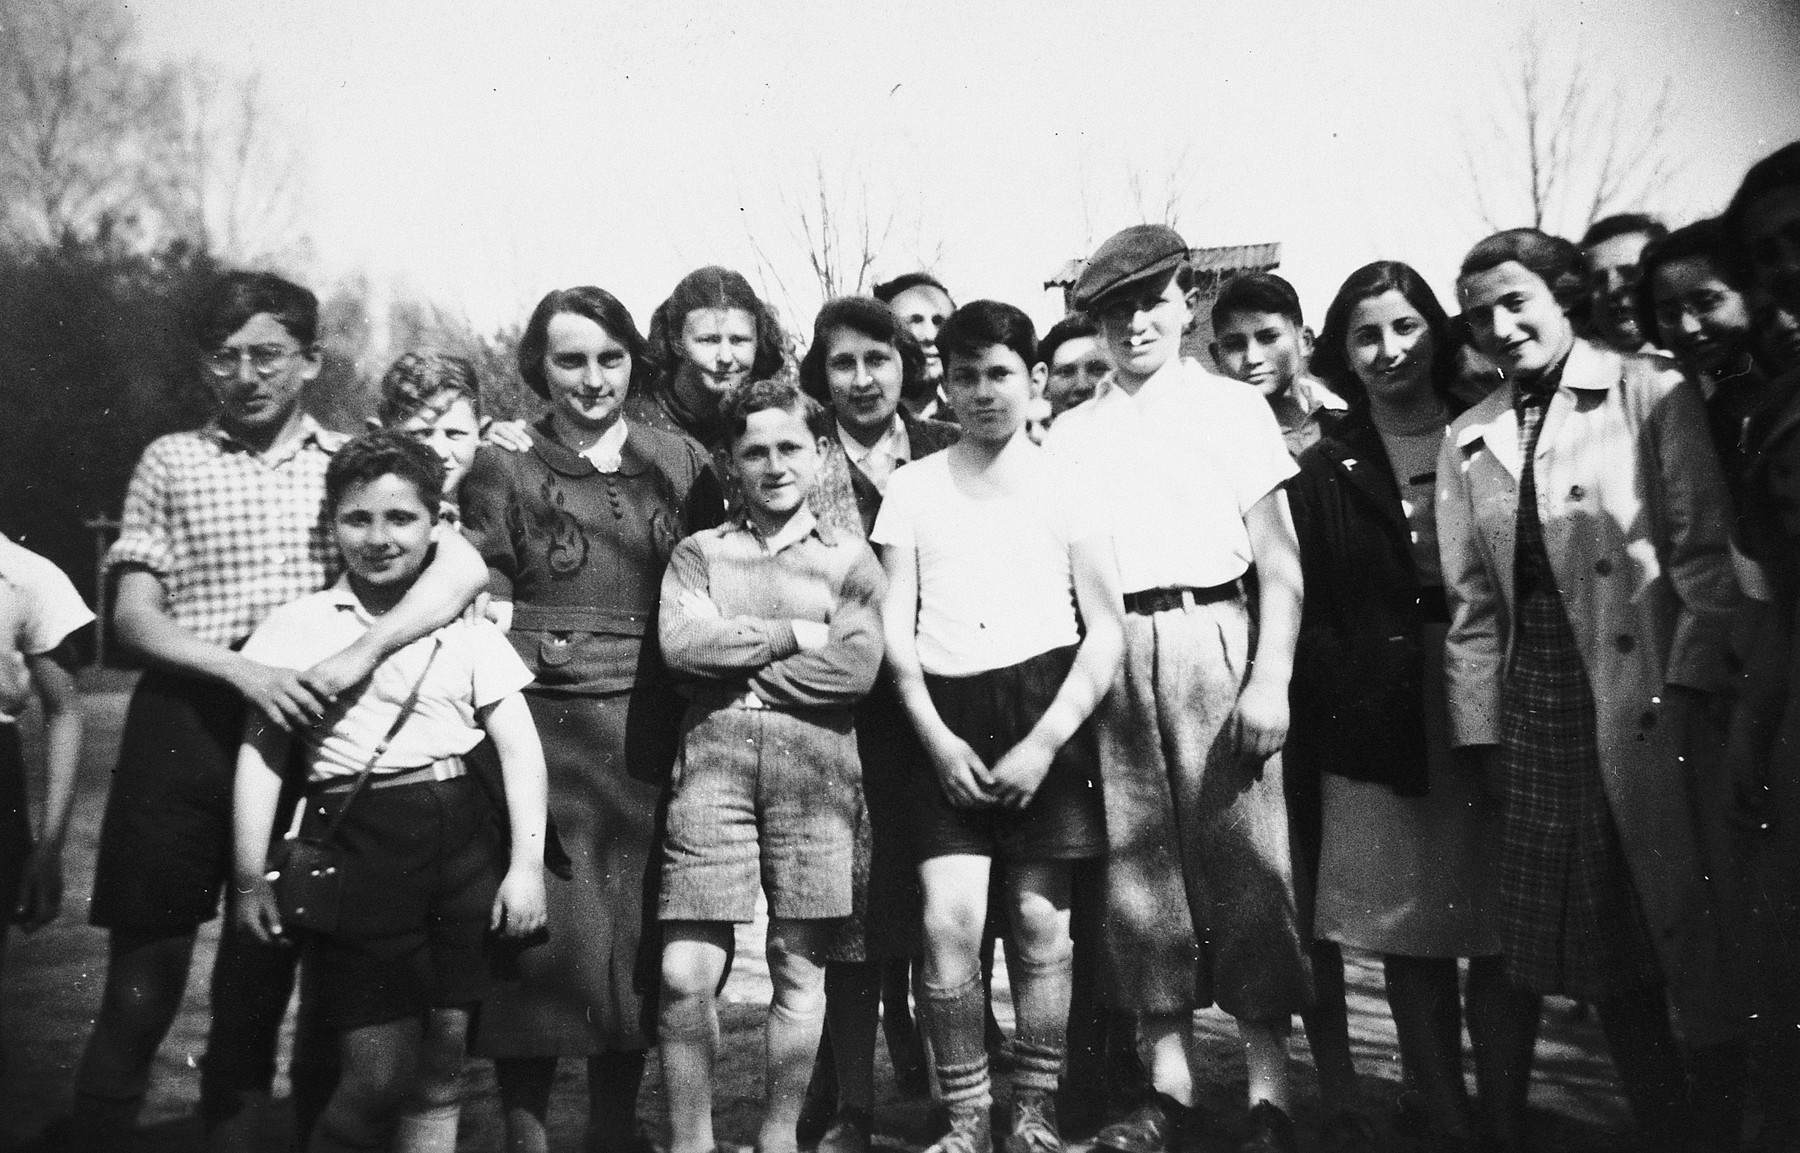 Group portrait of German-Jewish children staying at the Ons Boschhious children's home in Driebergen before going on a trip to see a soccer game in Soesterberg, Holland.